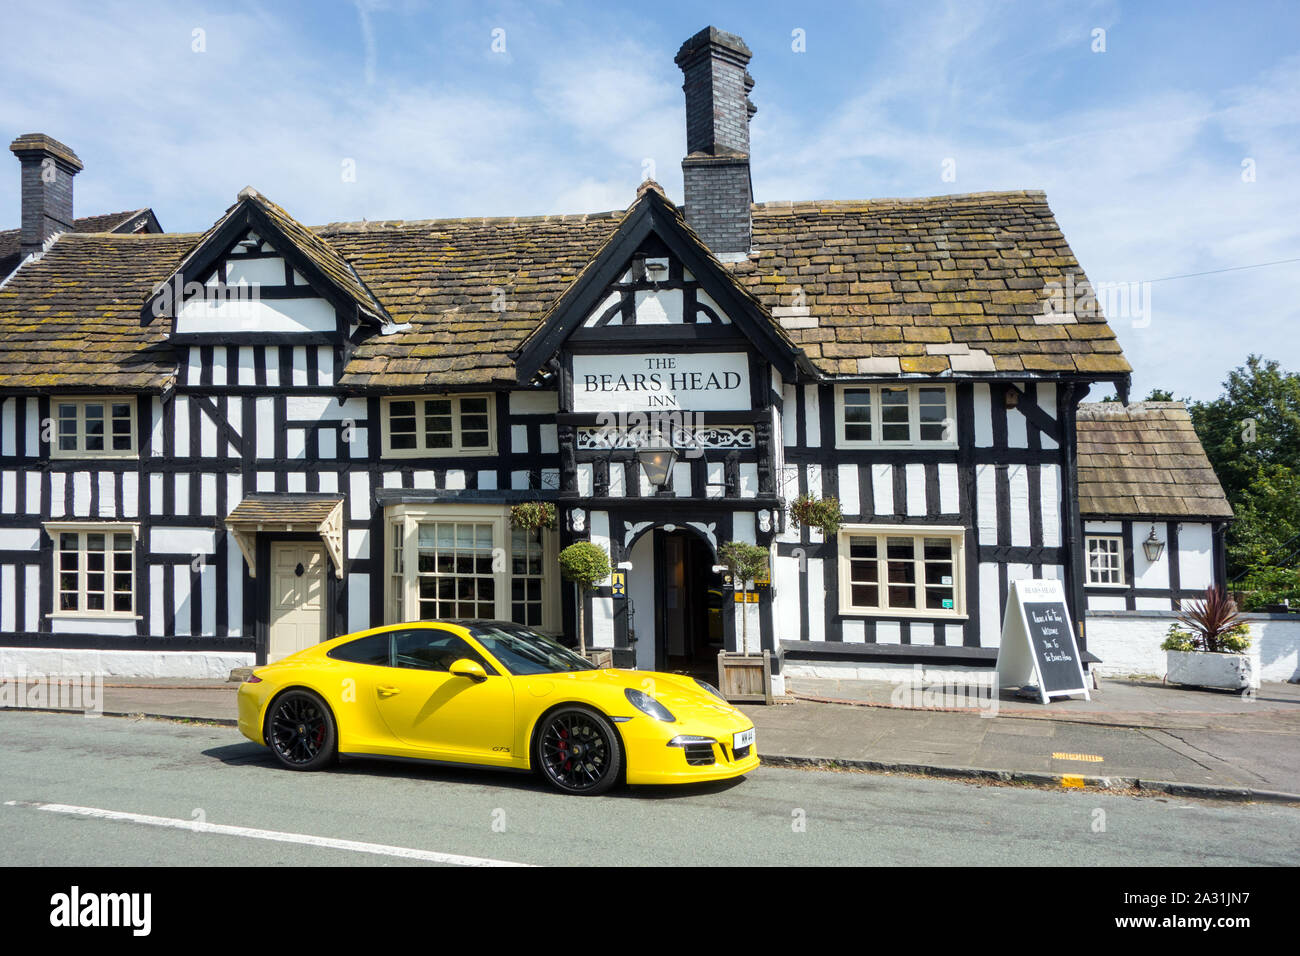 Yellow Porsche sports car parked outside a traditional English black and white half timbered inn public house at Brereton Cheshire England Stock Photo